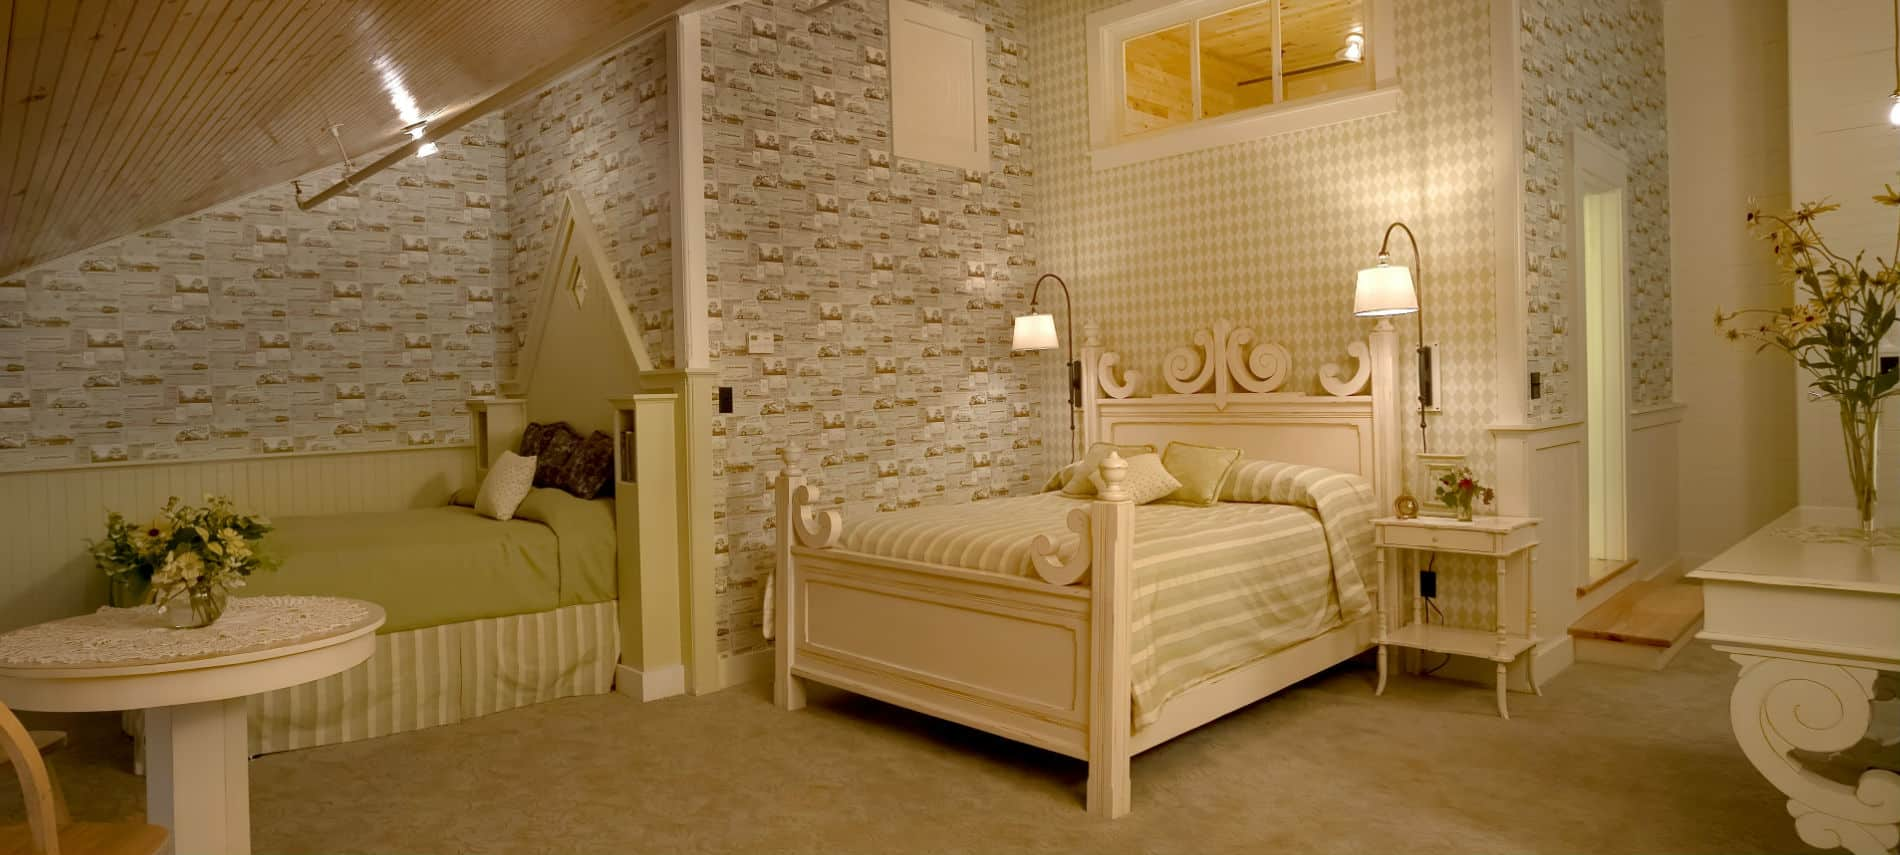 Bedroom with patterned wallpaper and all cream colored furniture holds a queen bed and a twin bed.